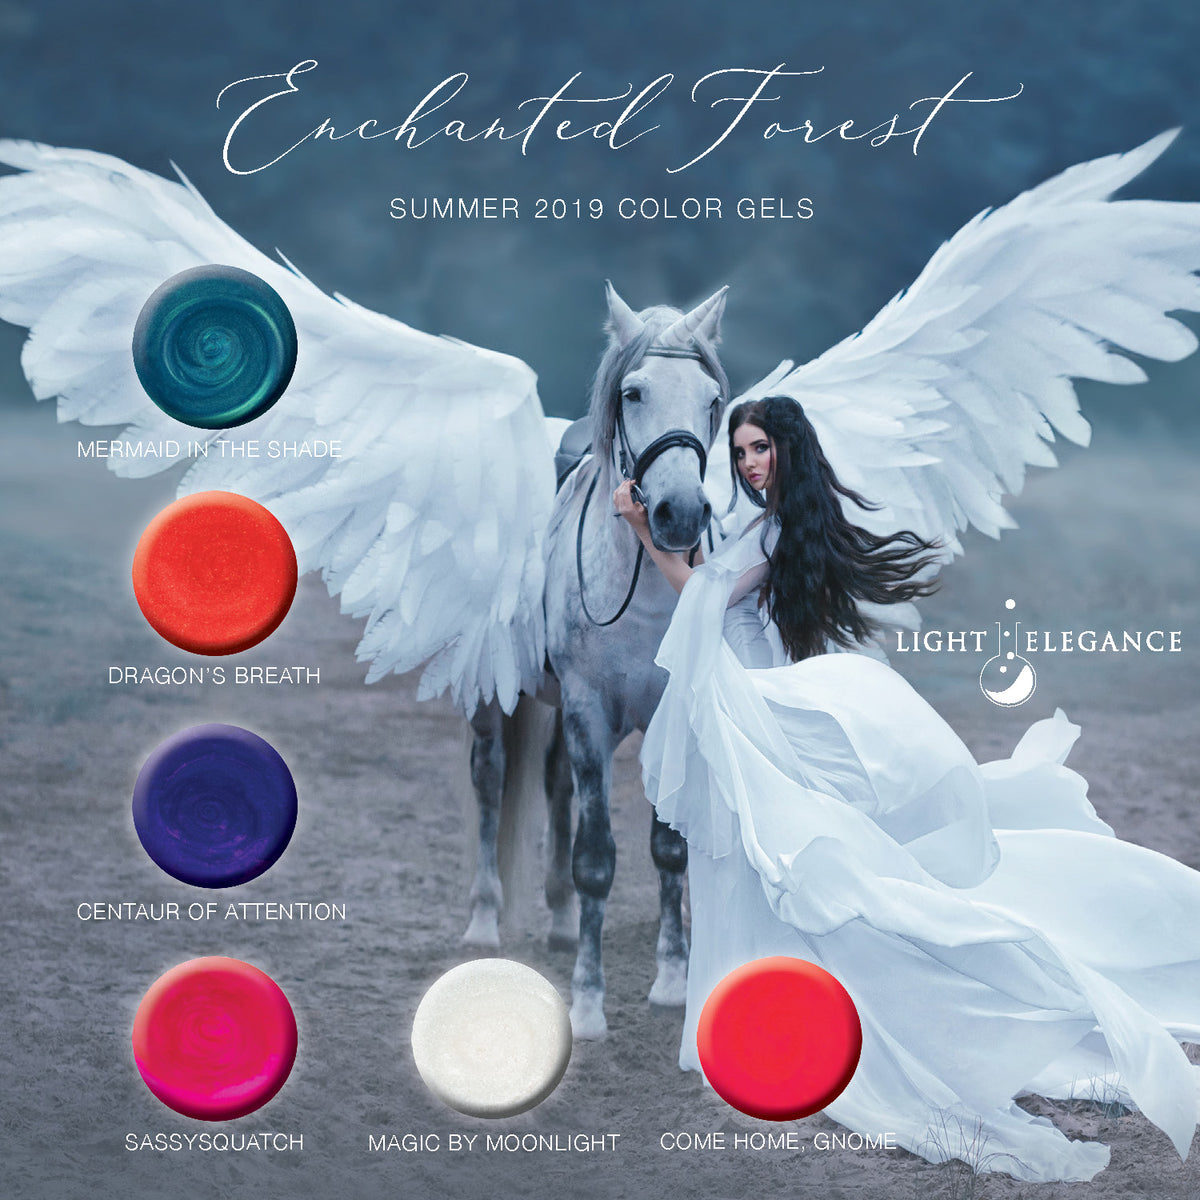 Summer 2019 Enchanted Forest Collection